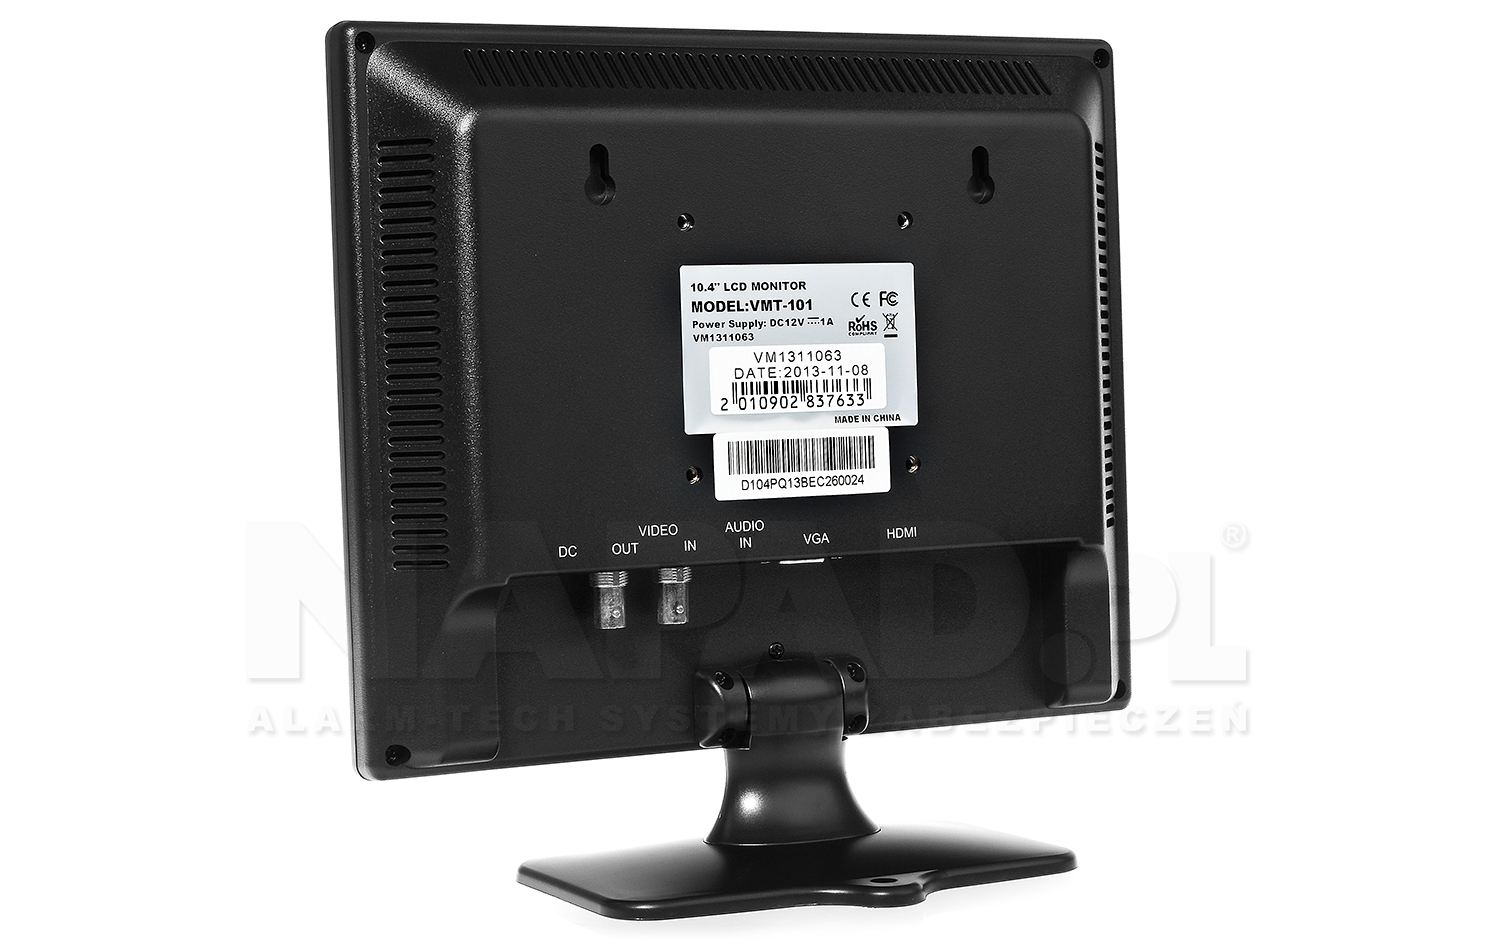 Monitor LED VMT-101 10.4